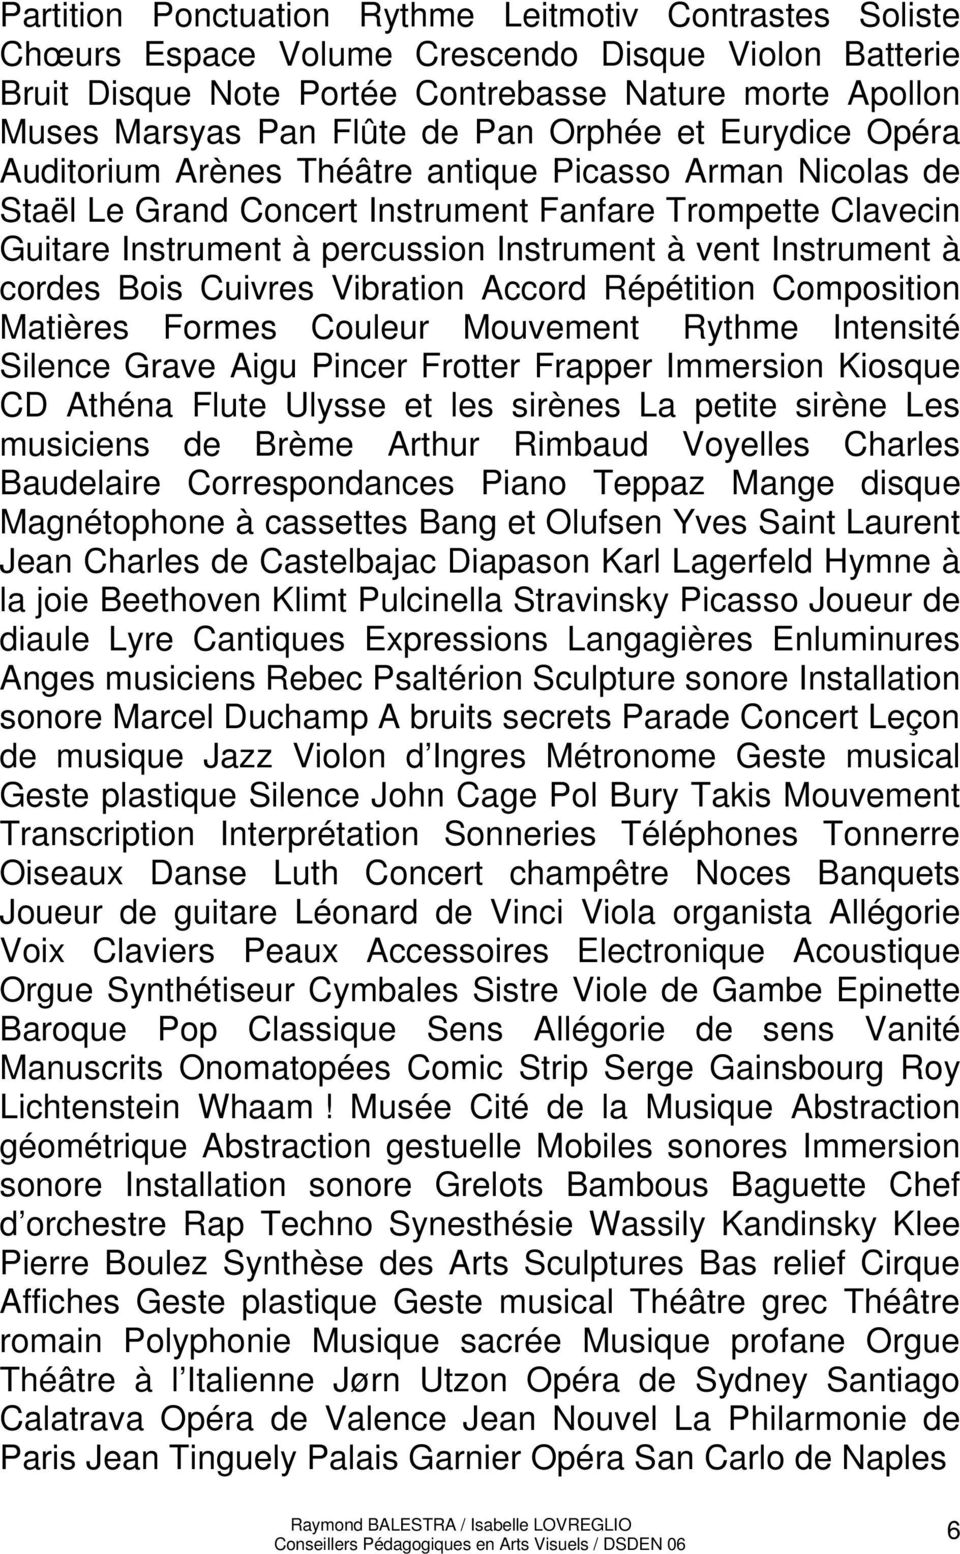 Instrument à cordes Bois Cuivres Vibration Accord Répétition Composition Matières Formes Couleur Mouvement Rythme Intensité Silence Grave Aigu Pincer Frotter Frapper Immersion Kiosque CD Athéna Flute